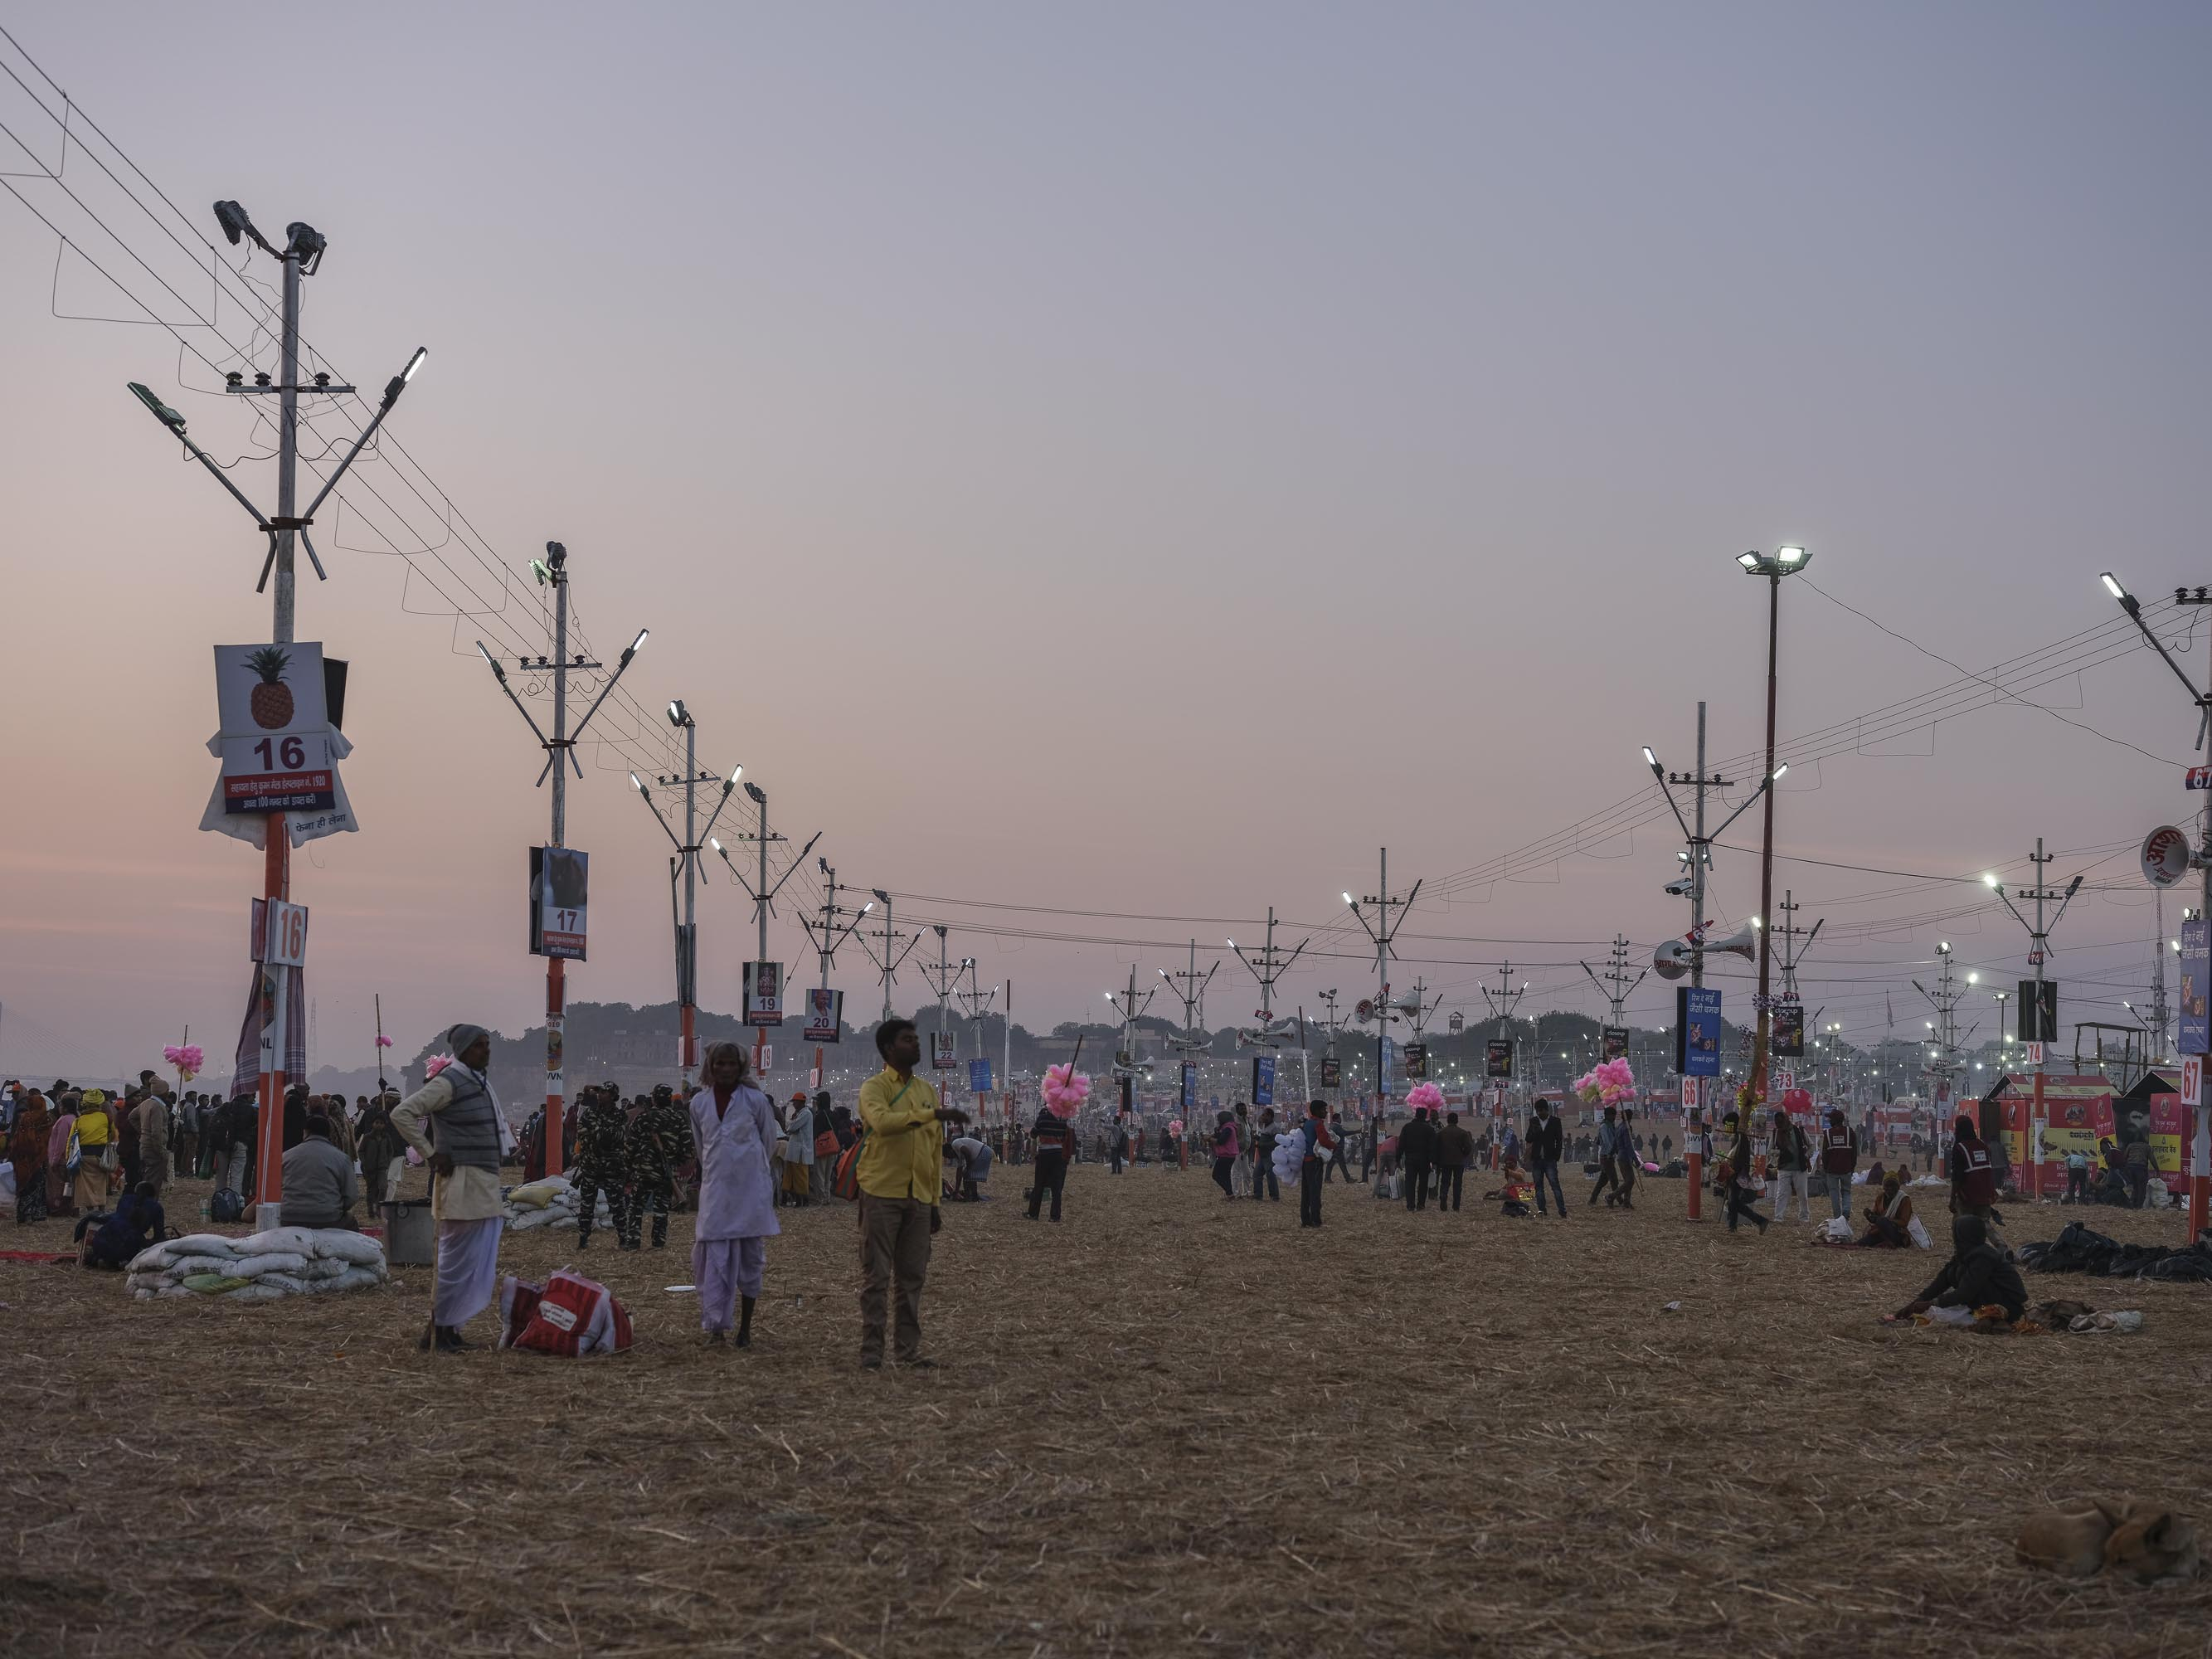 sunset after bath pilgrims Kumbh mela 2019 India Allahabad Prayagraj Ardh hindu religious Festival event rivers photographer jose jeuland photography